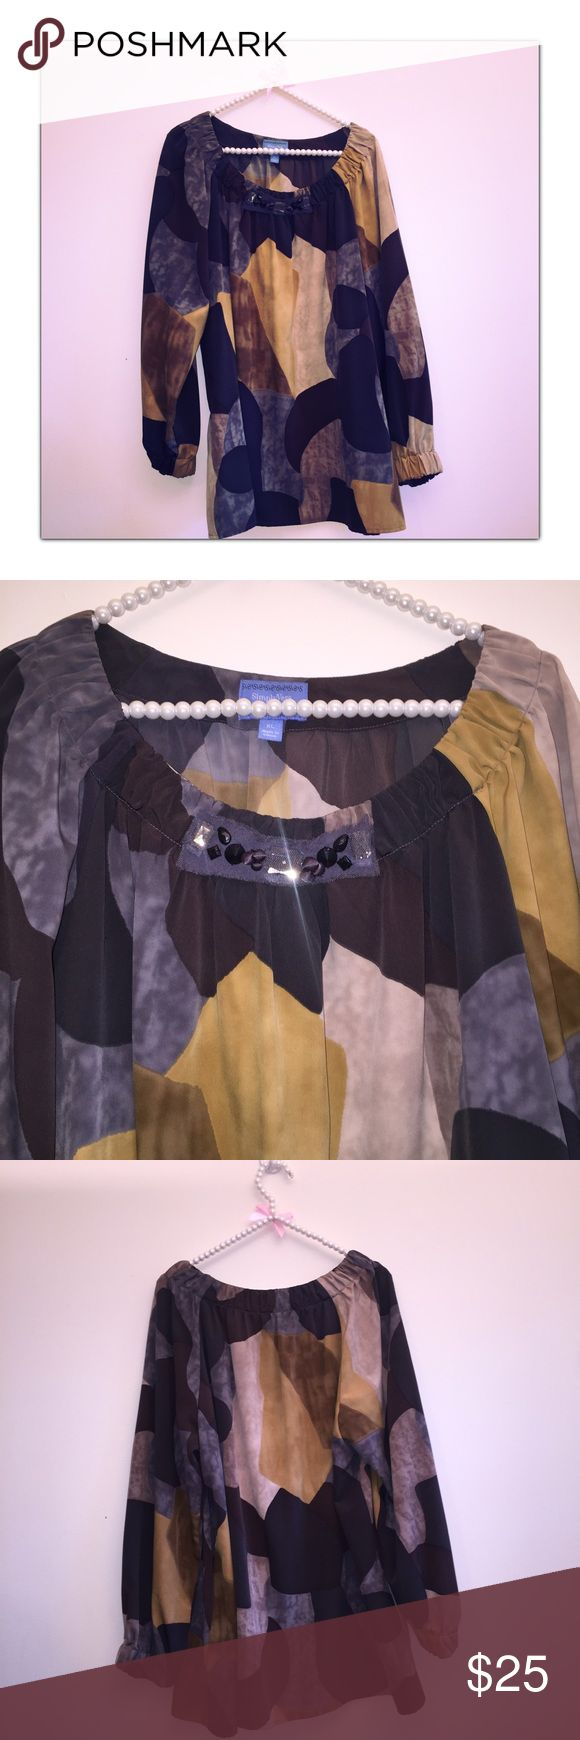 Simply Vera Jewel Top So perfect and in great condition Simply Vera Vera Wang Tops